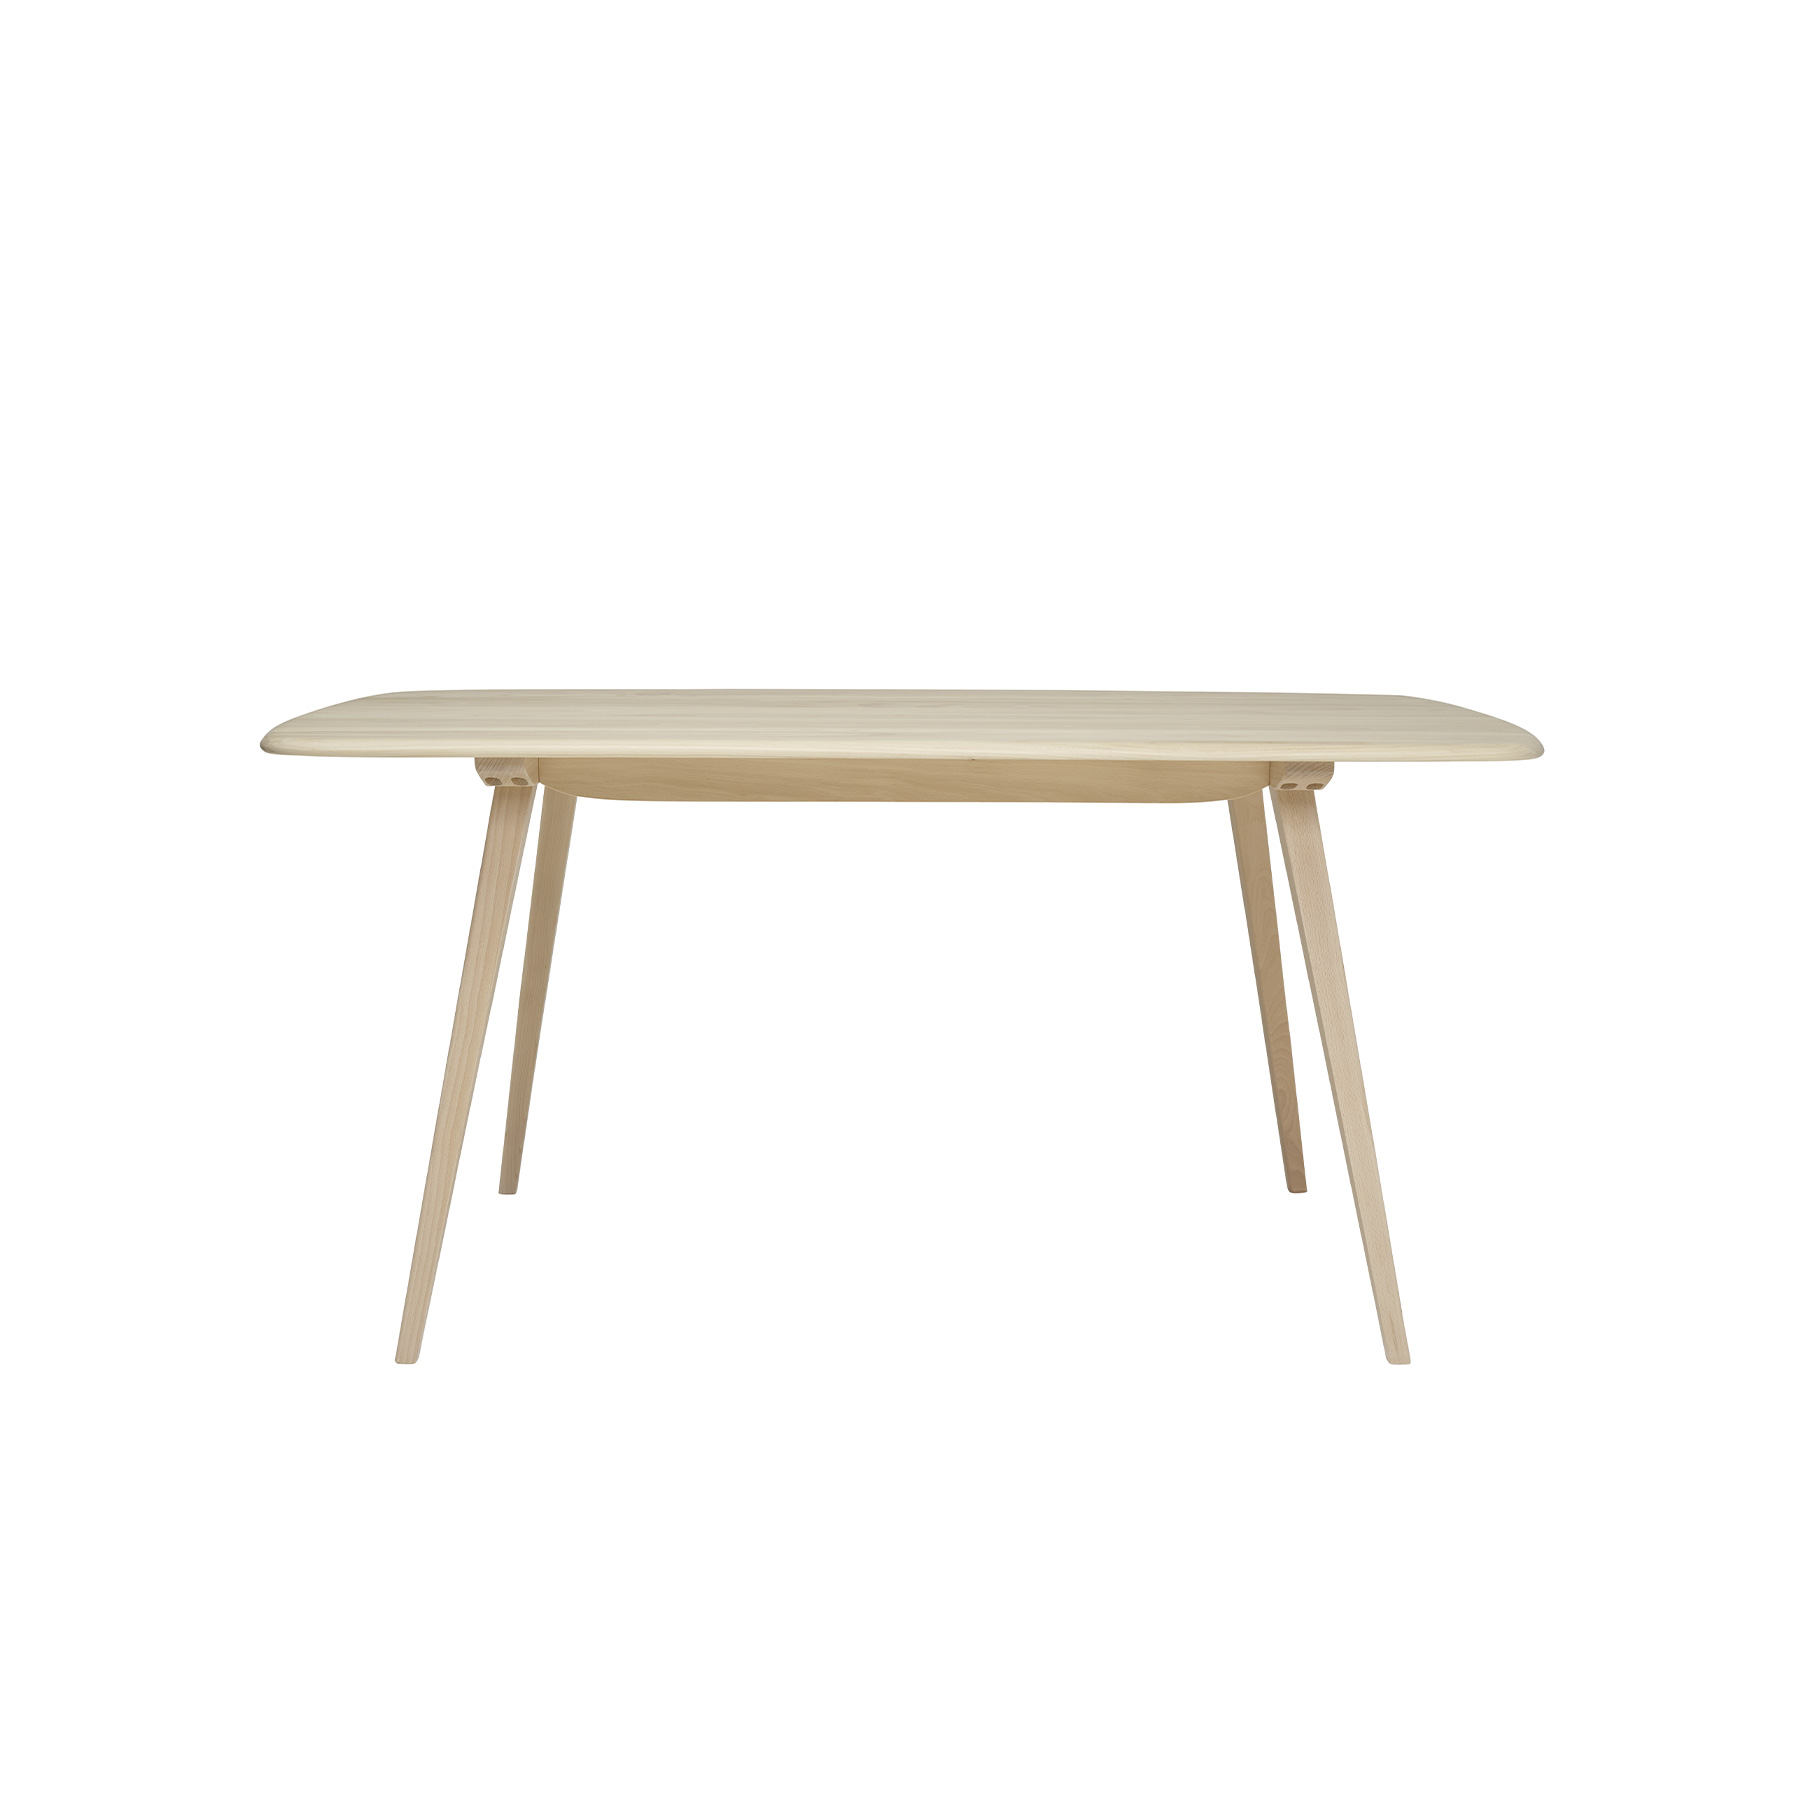 Originals Plank Table - <p>The Ercol Originals are pieces of timeless and classic design that never date or show their age. It is furniture that is as relevant and as functional now as it was when it was created in the 1950s and 1960s. This furniture was designed by Ercol's founder, Lucian Ercolani, who drew for his inspiration on the time-proven local design and craft in the Chiltern Hills around where he lived and built his first factory in 1920 in High Wycombe. Using the strength of beech and the beauty of elm he carried this definition on into a huge variety of dining, kitchen, and school chairs and then extended the idiom into the low easy chair range epitomised by the 206 armchair and the studio couch. The beauty of the colour and the grain of the elm took Lucian on to use elm for the tables and cabinets of the Originals and the following Windsor range. This stylish dining table boasts outward facing tapered legs and a solid Ash top with attractive rounded edges, creating a simple but contemporary feel. This table seats 4-6 guests. It will be finished in your choice from a selection of lacquer finishes that both protects the timber, whilst enabling you to choose the look to match your style and décor. Alternatively, you can opt for one of Ercol's paint finishes to provide a pop of colour.</p>    Matter of Stuff